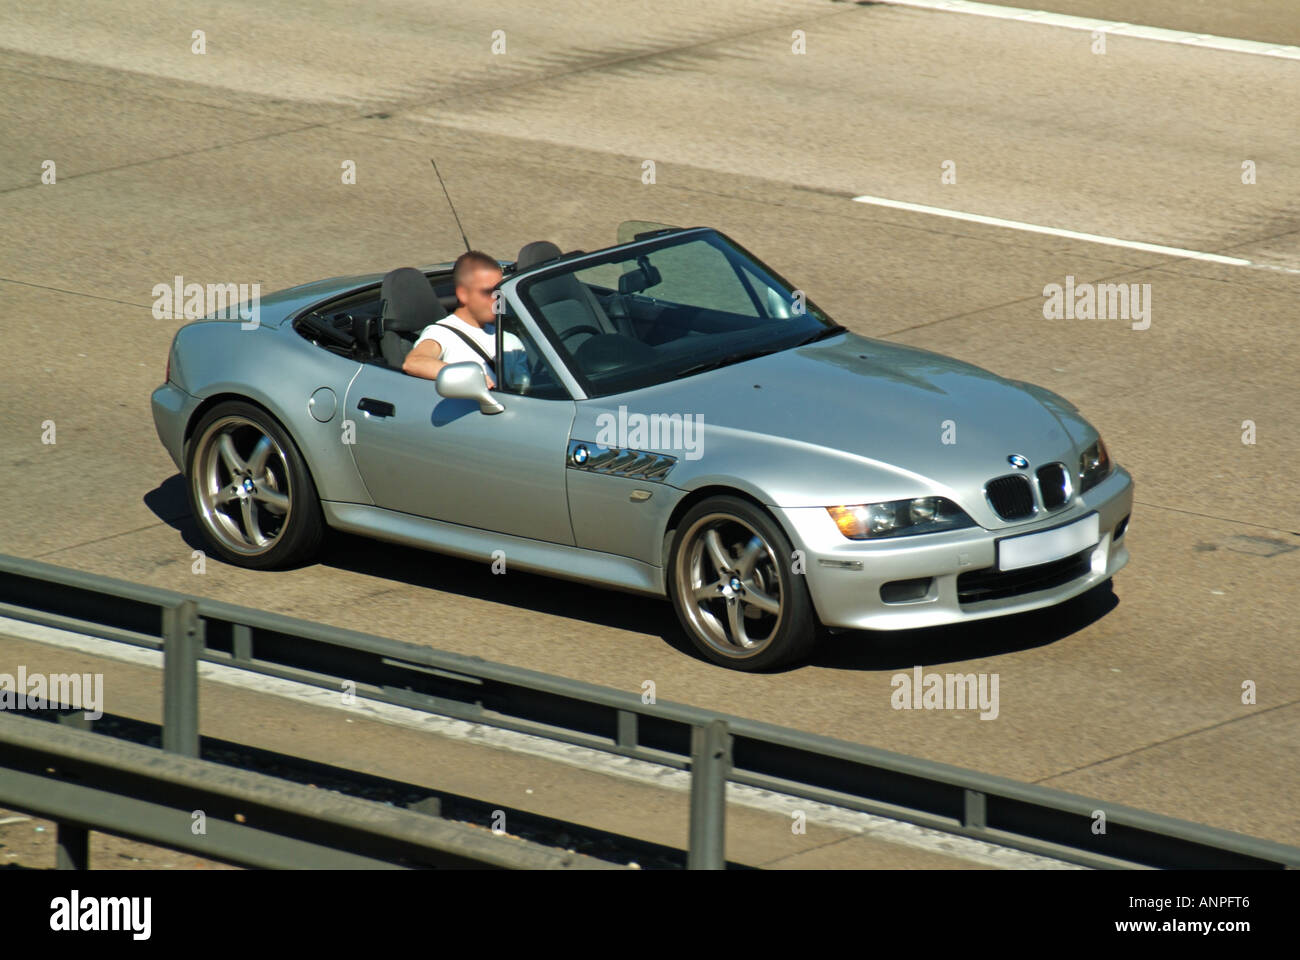 M25 motorway convertible car with hood down obscured numberplate - Stock Image